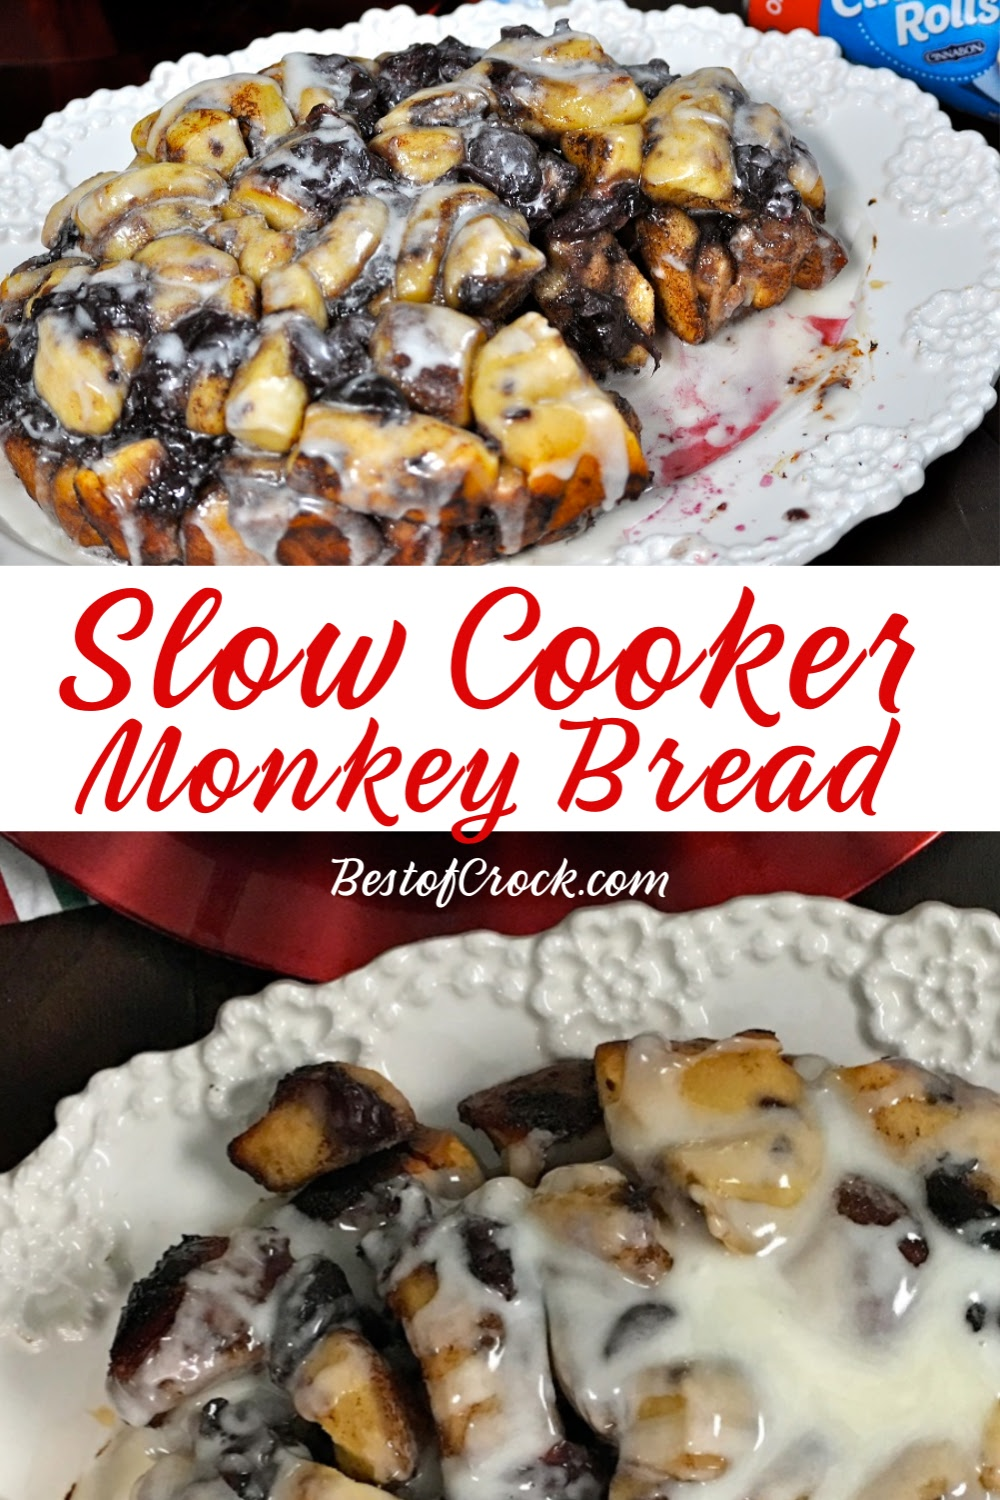 This slow cooker monkey bread recipe is perfect as a crockpot dessert or even a crockpot breakfast. Plus, it is an easy recipe you can make with children, too! Slow Cooker Breakfast Recipes | Holiday Crockpot Recipes | Dessert Recipes for Brunch | Brunch Recipes | Crockpot Brunch Recipes #breakfast #slowcooker via @bestofcrock